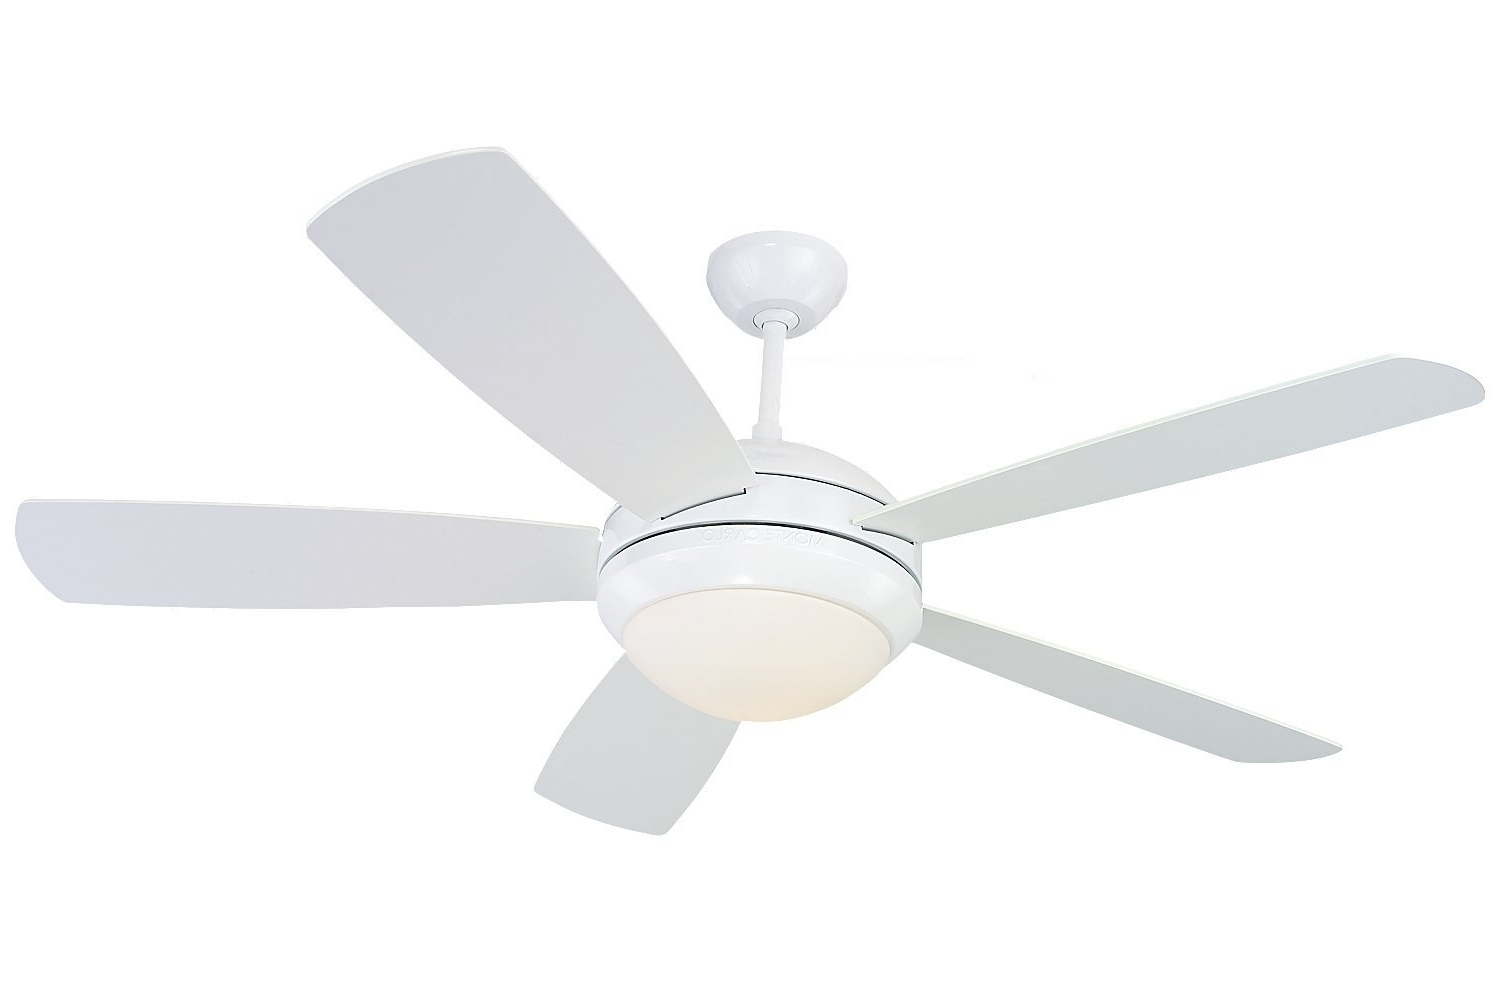 Amazon Ceiling Fans With Lights Unique Outdoor Ceiling Fan With Regarding Most Popular Amazon Outdoor Ceiling Fans With Lights (View 19 of 20)